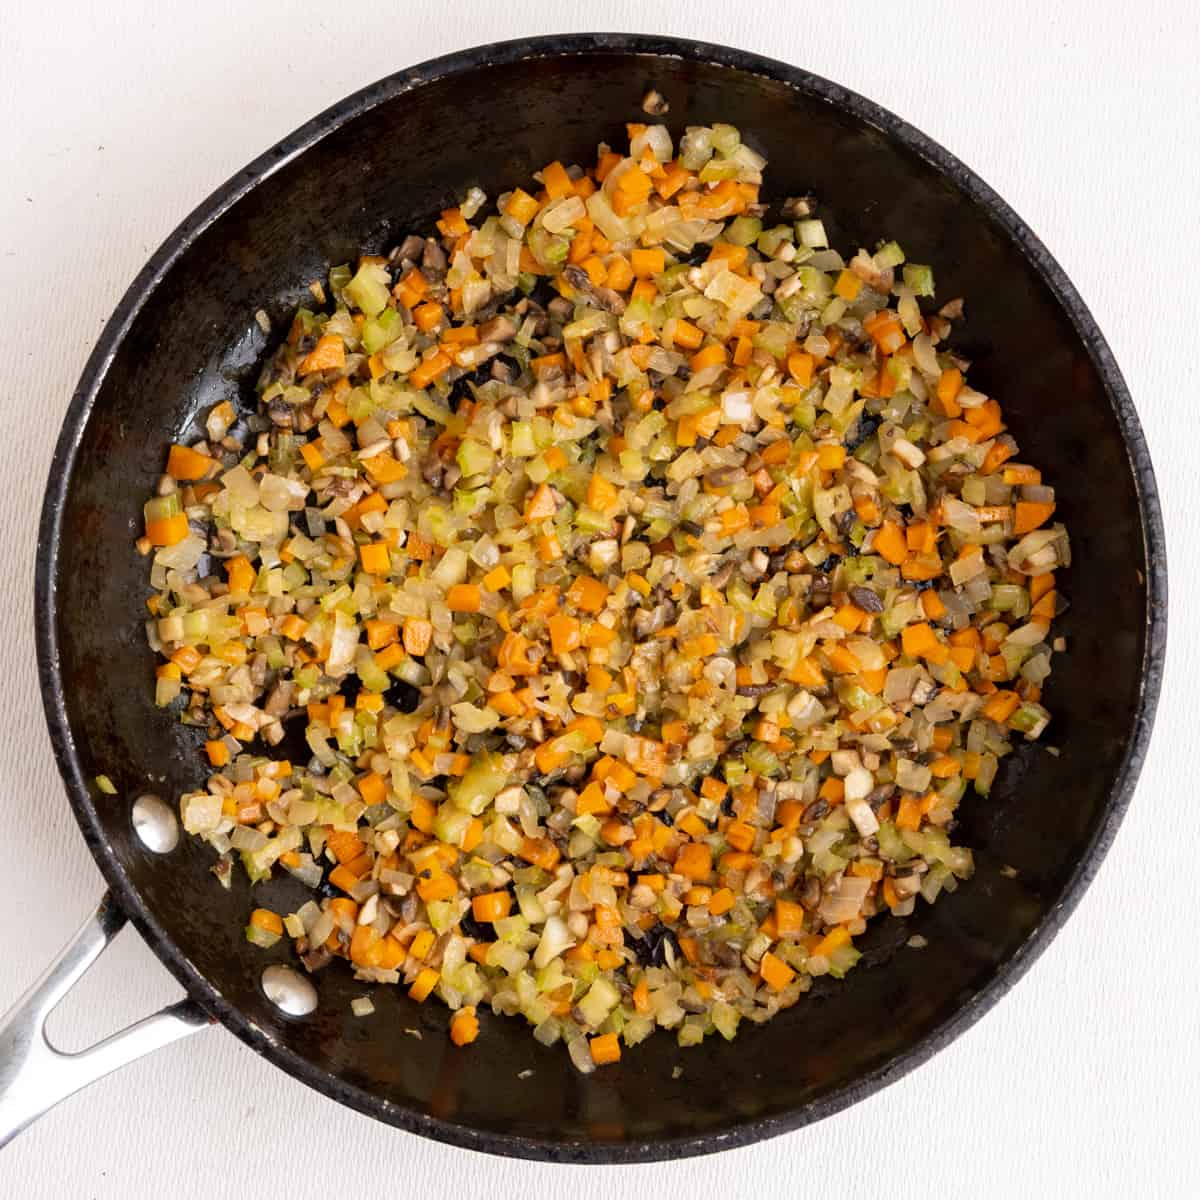 Sauteeing finely diced onion, carrots, celery and mushrooms in a frying pan.